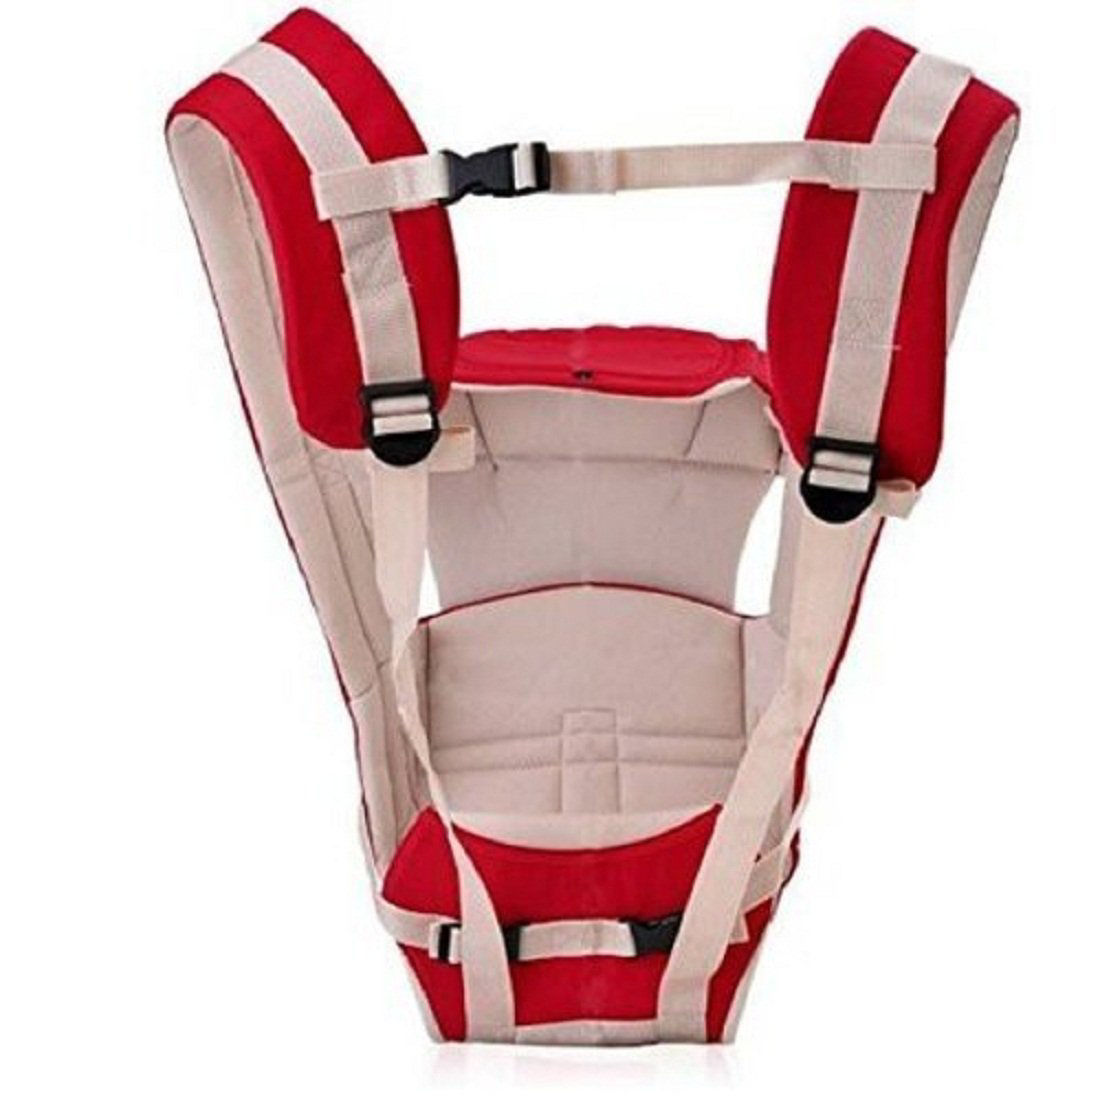 4-in-1 Adjustable Baby Carrier Bag-Red